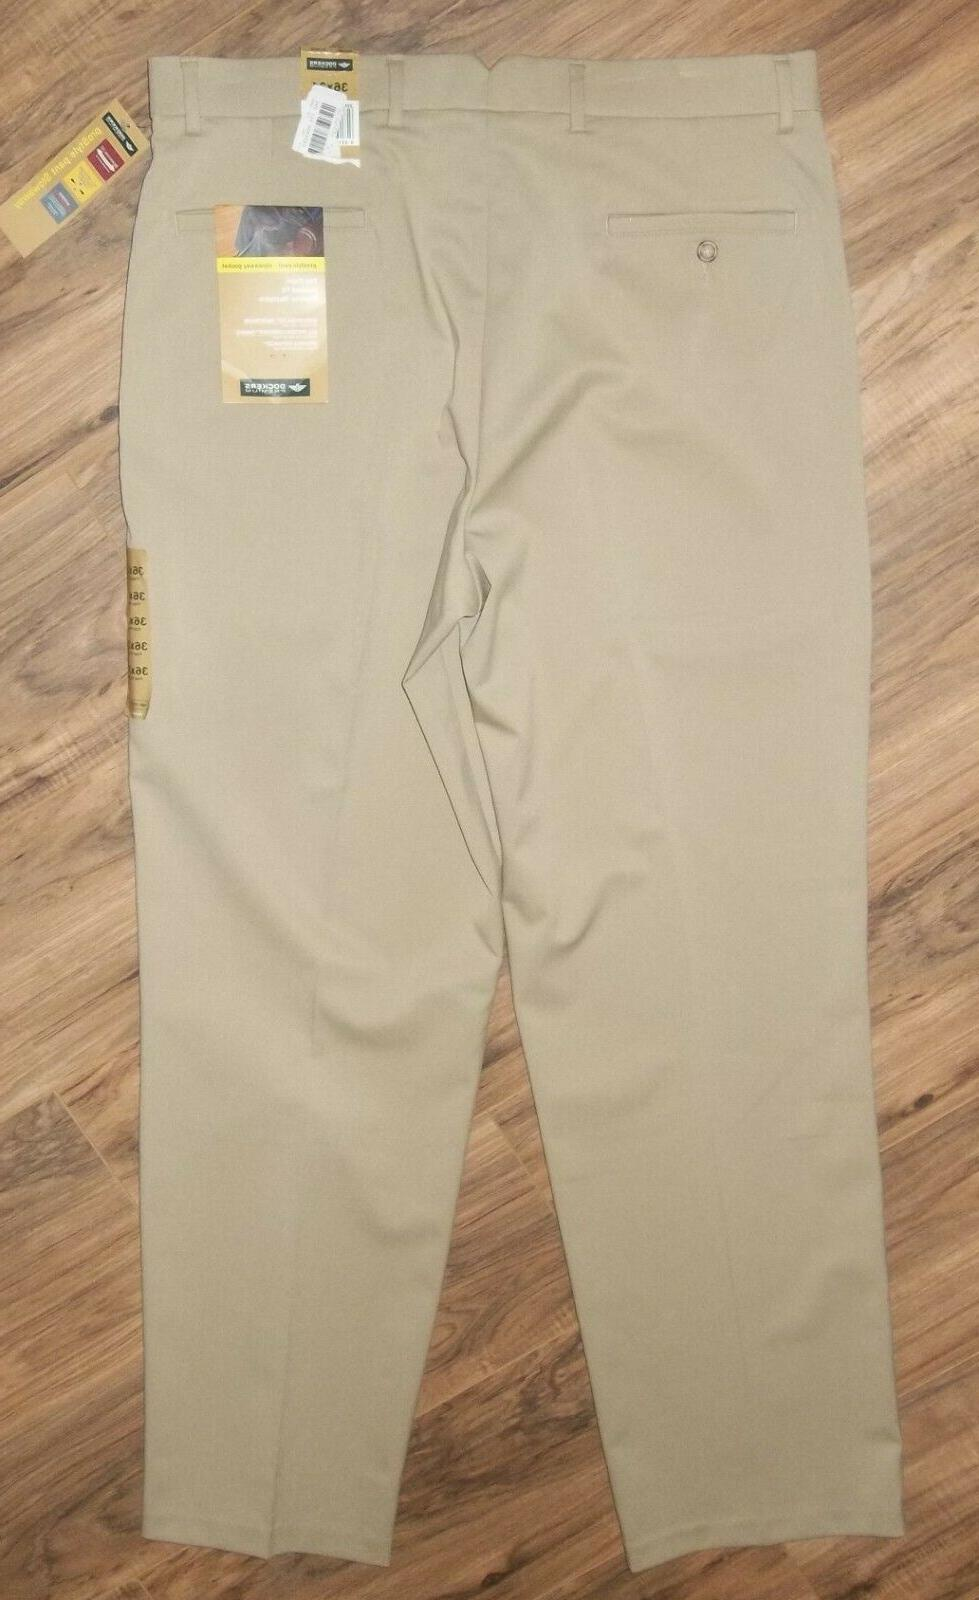 NWT Men's Pants SIZE 36 34 ~ Waistband, Relaxed